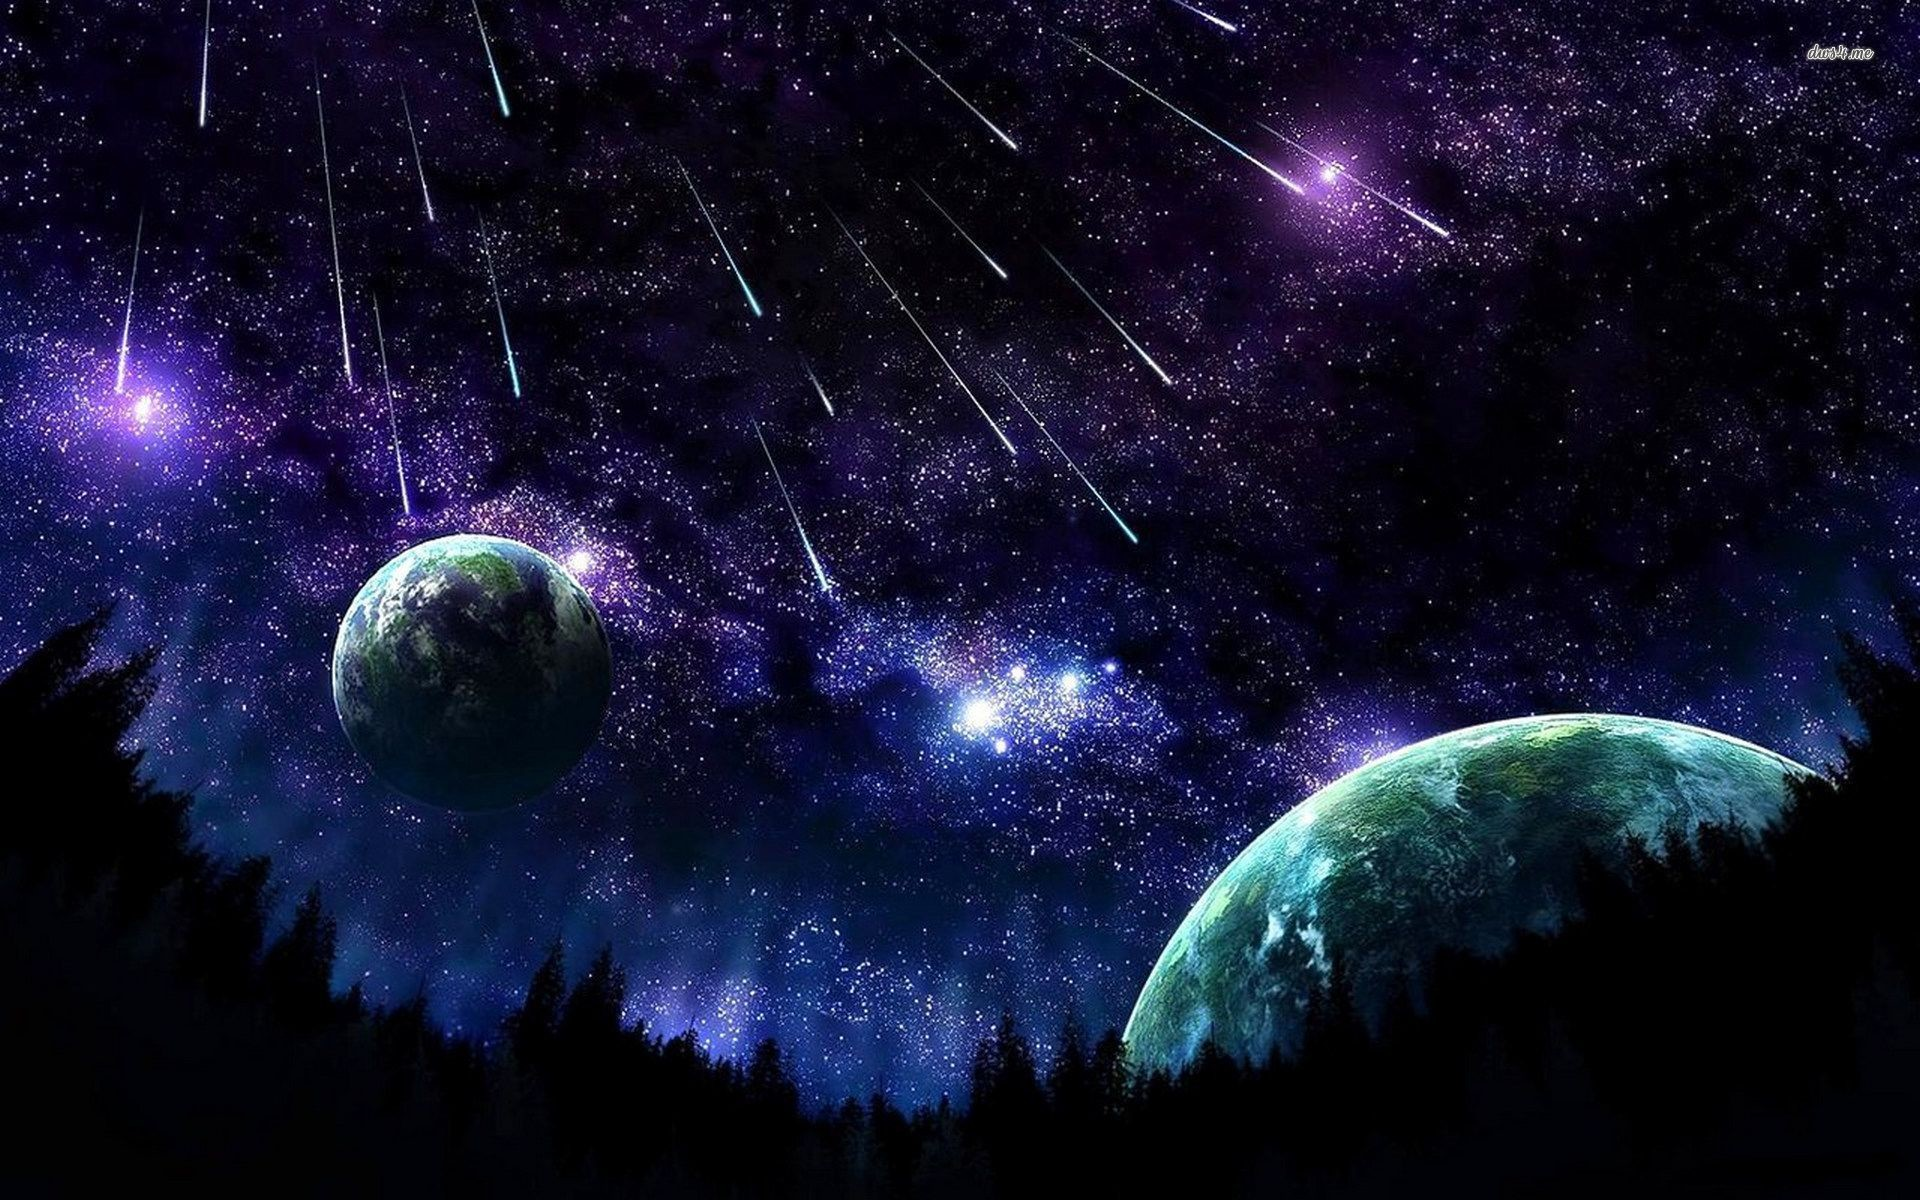 Animated Night Sky Wallpaper 51+ images